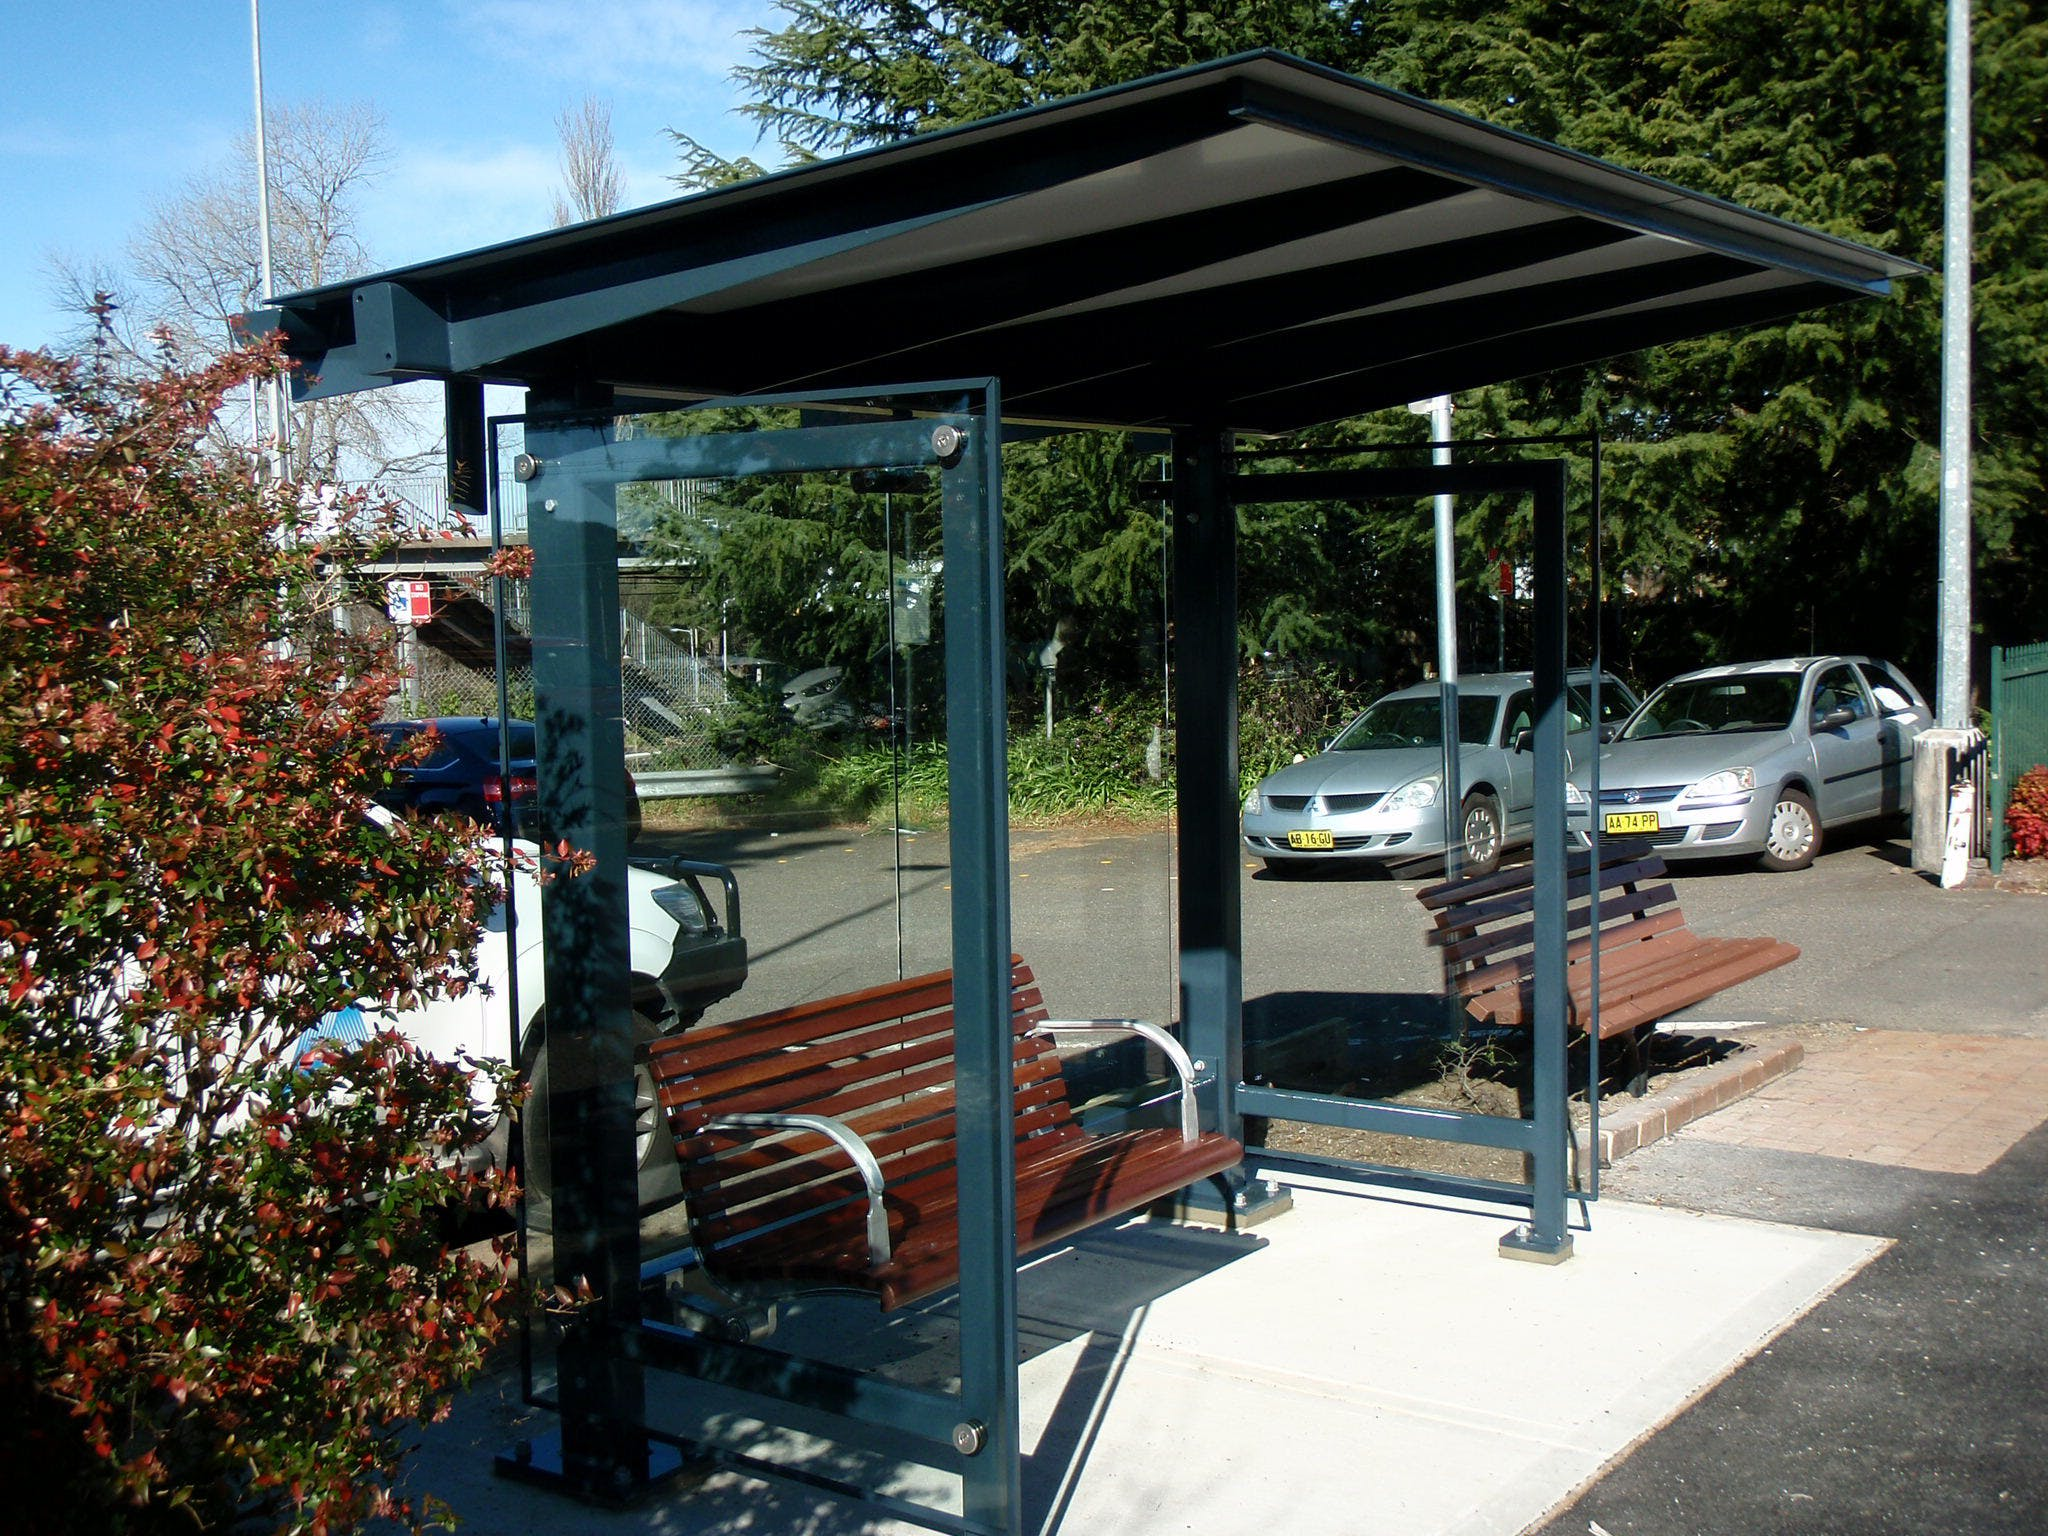 Accessible bus stop